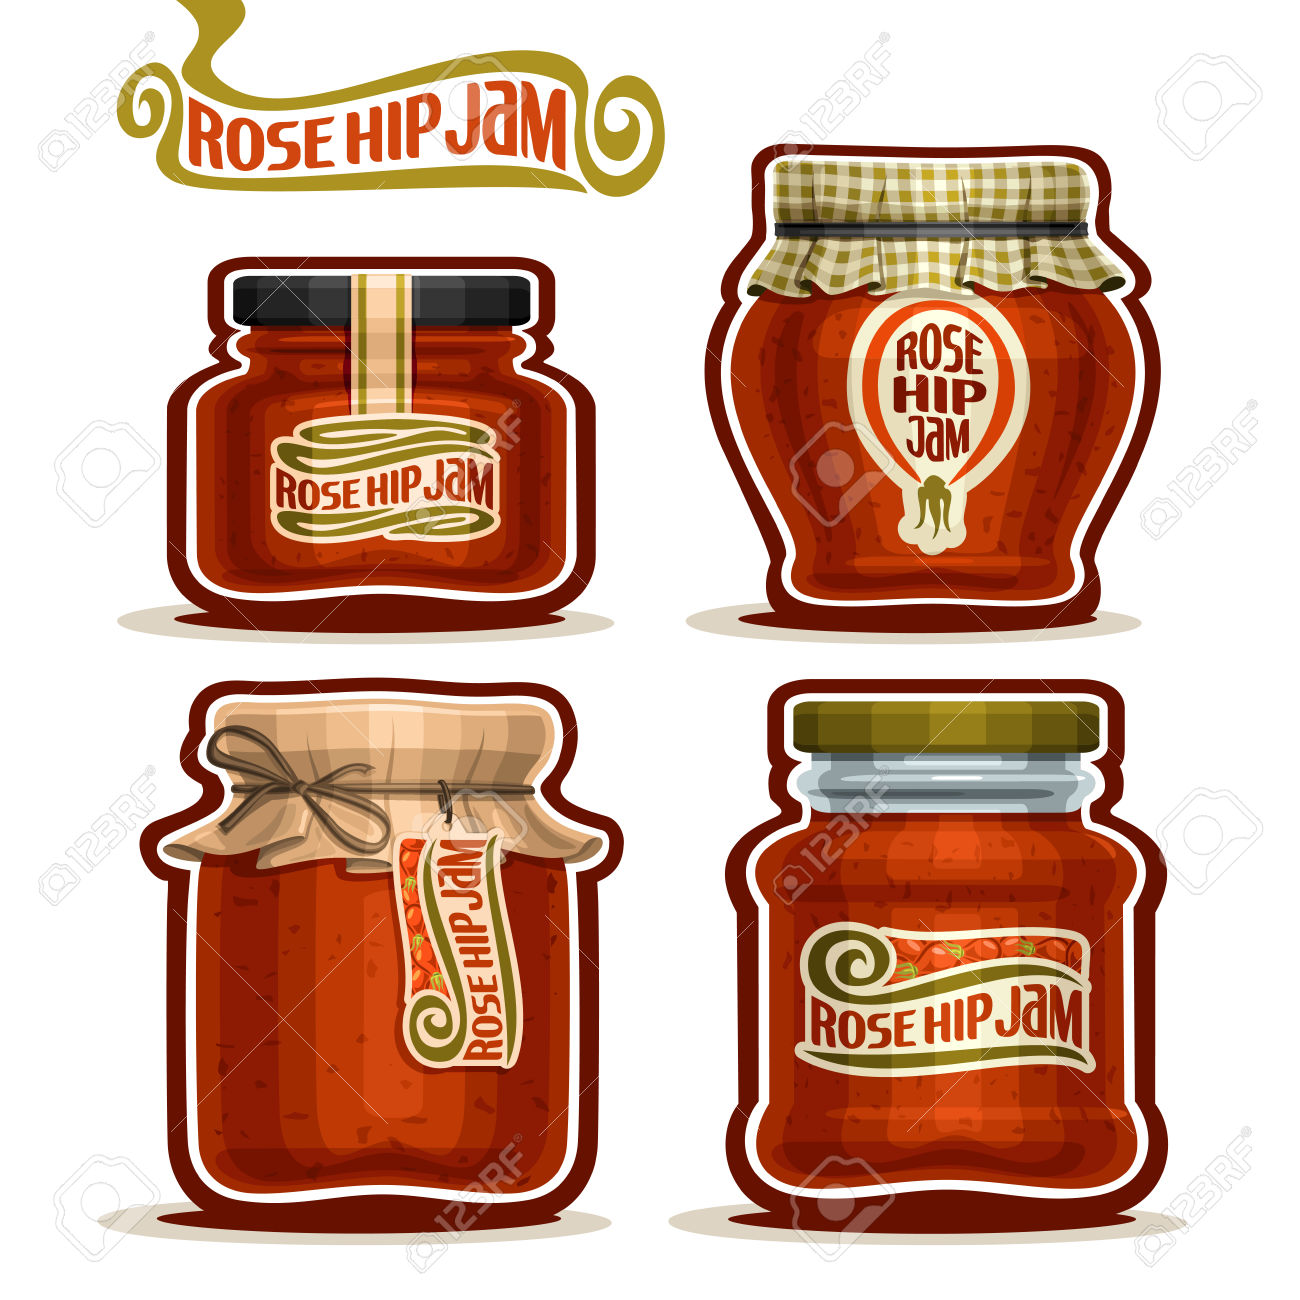 Rose Hip Jam In Jars With Paper Lid, Pot Home Made Rosehip Jams.